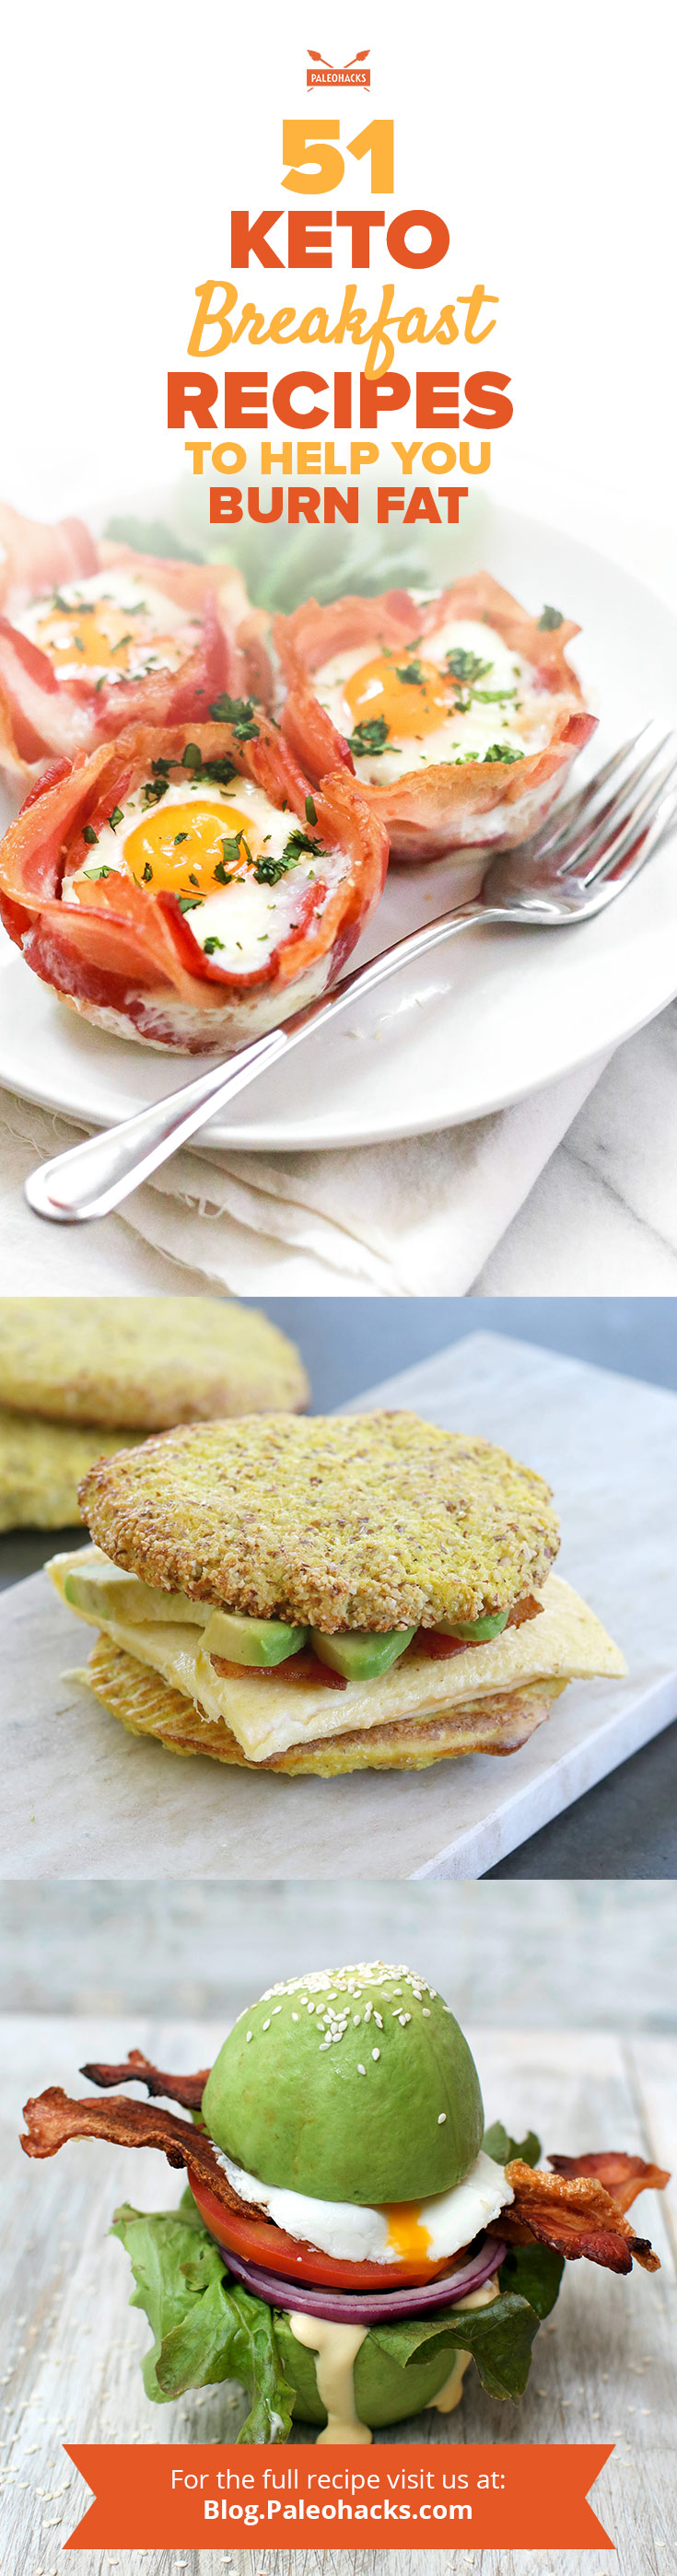 51 Keto Breakfast Recipes To Help You Burn Fat Low Carb Paleo